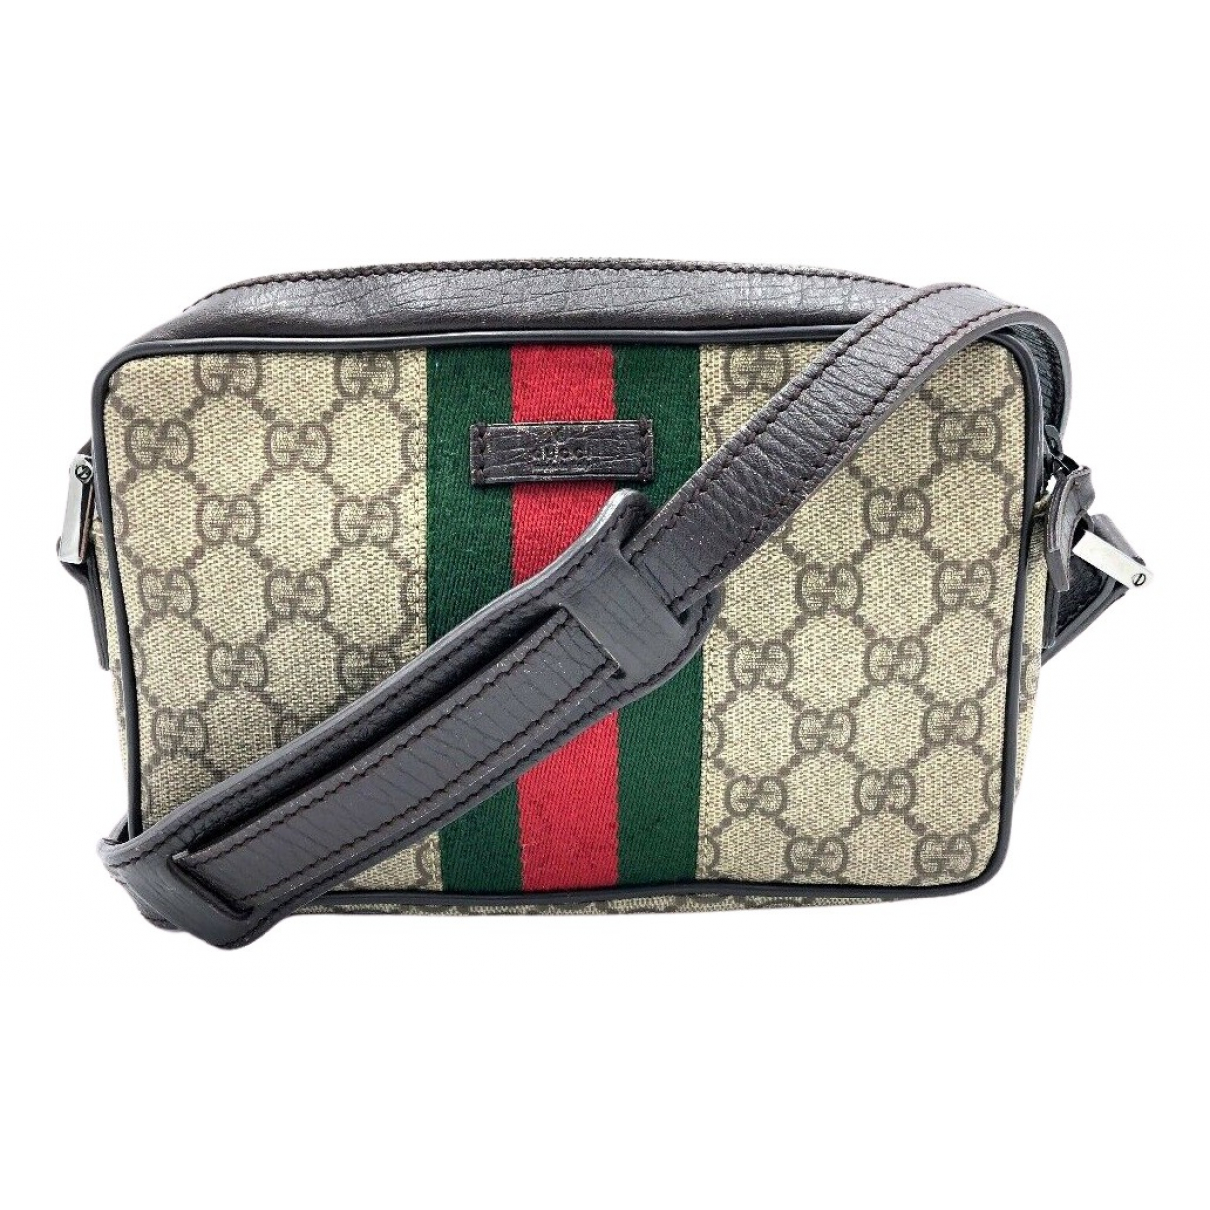 Gucci N Multicolour Cloth handbag for Women N